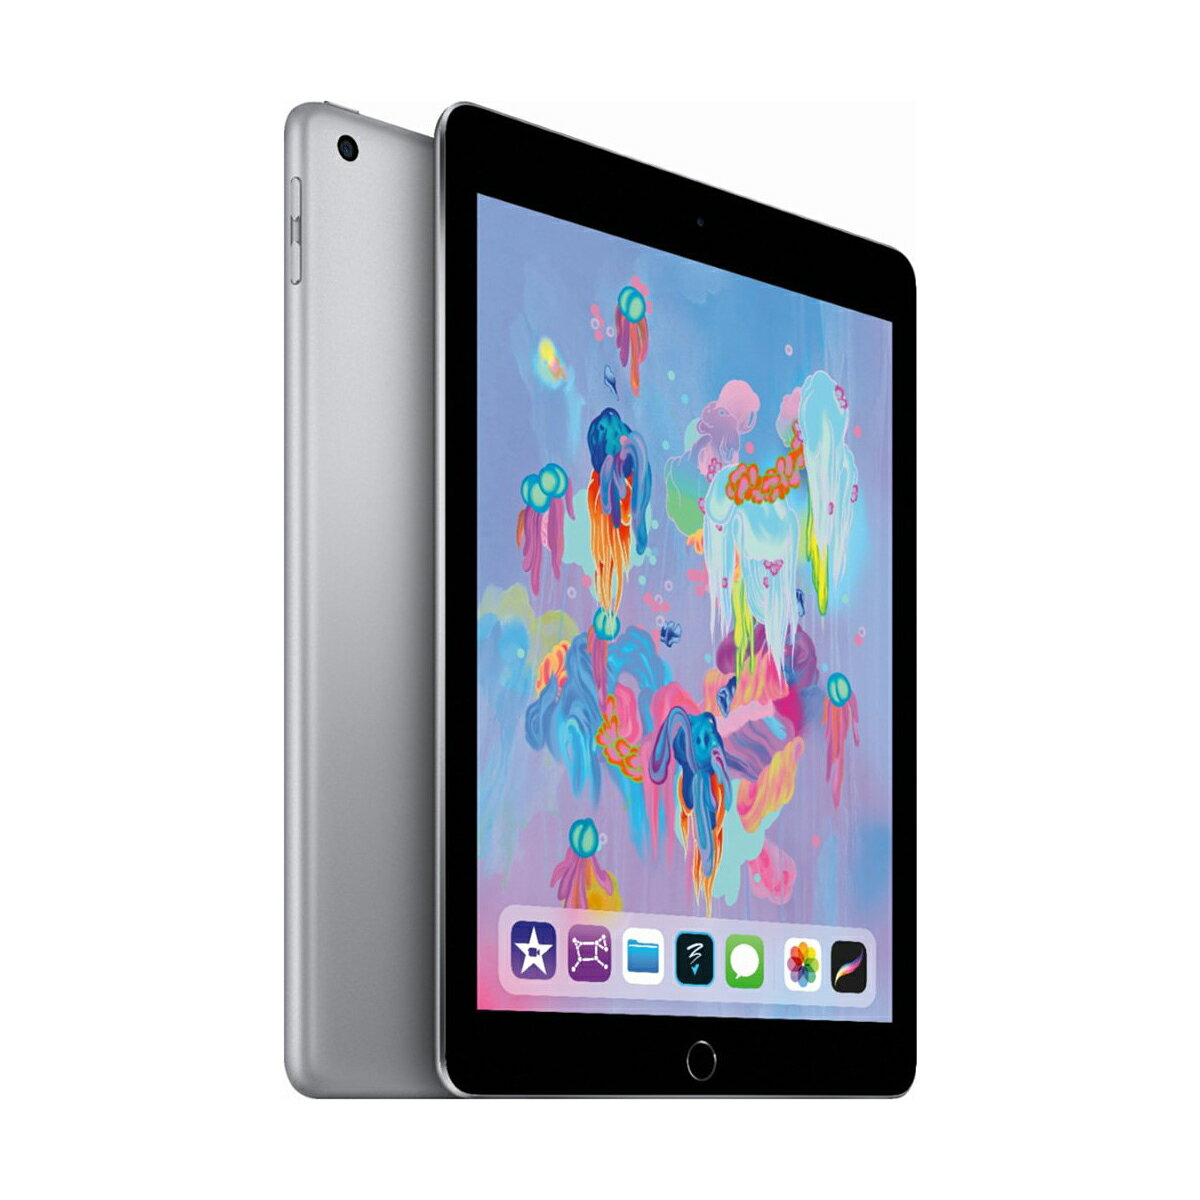 "Apple iPad 9.7"" Multi-Touch Retina Display 32GB A10 Chip Wi-Fi Tablet MR7F2LL/A - Space Gray (2018) 1"